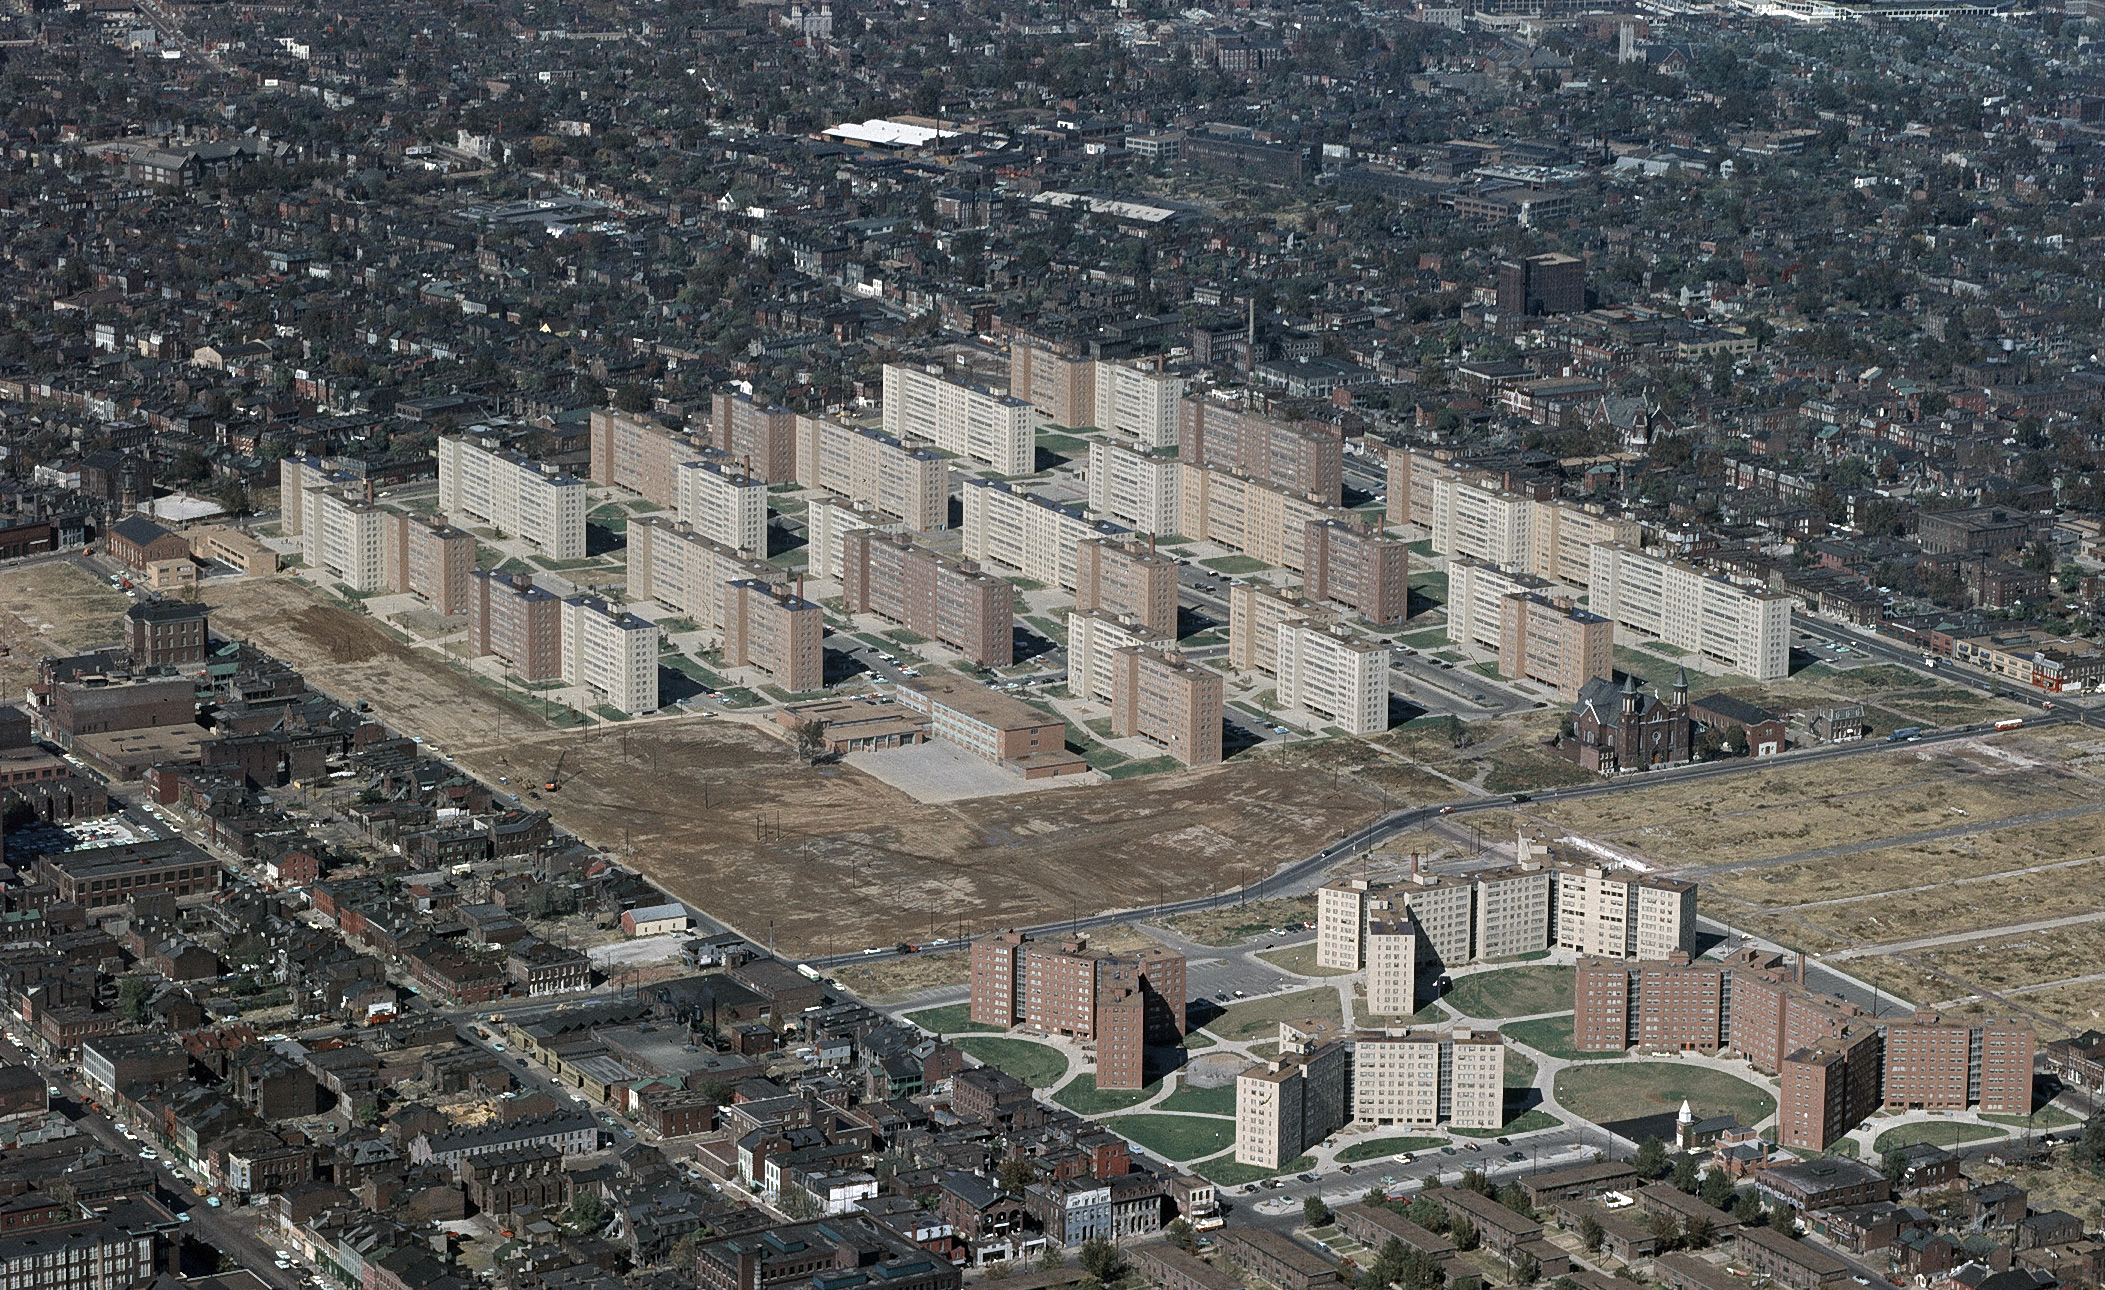 Above: Pruitt-Igoe (click to view Wikipedia article)